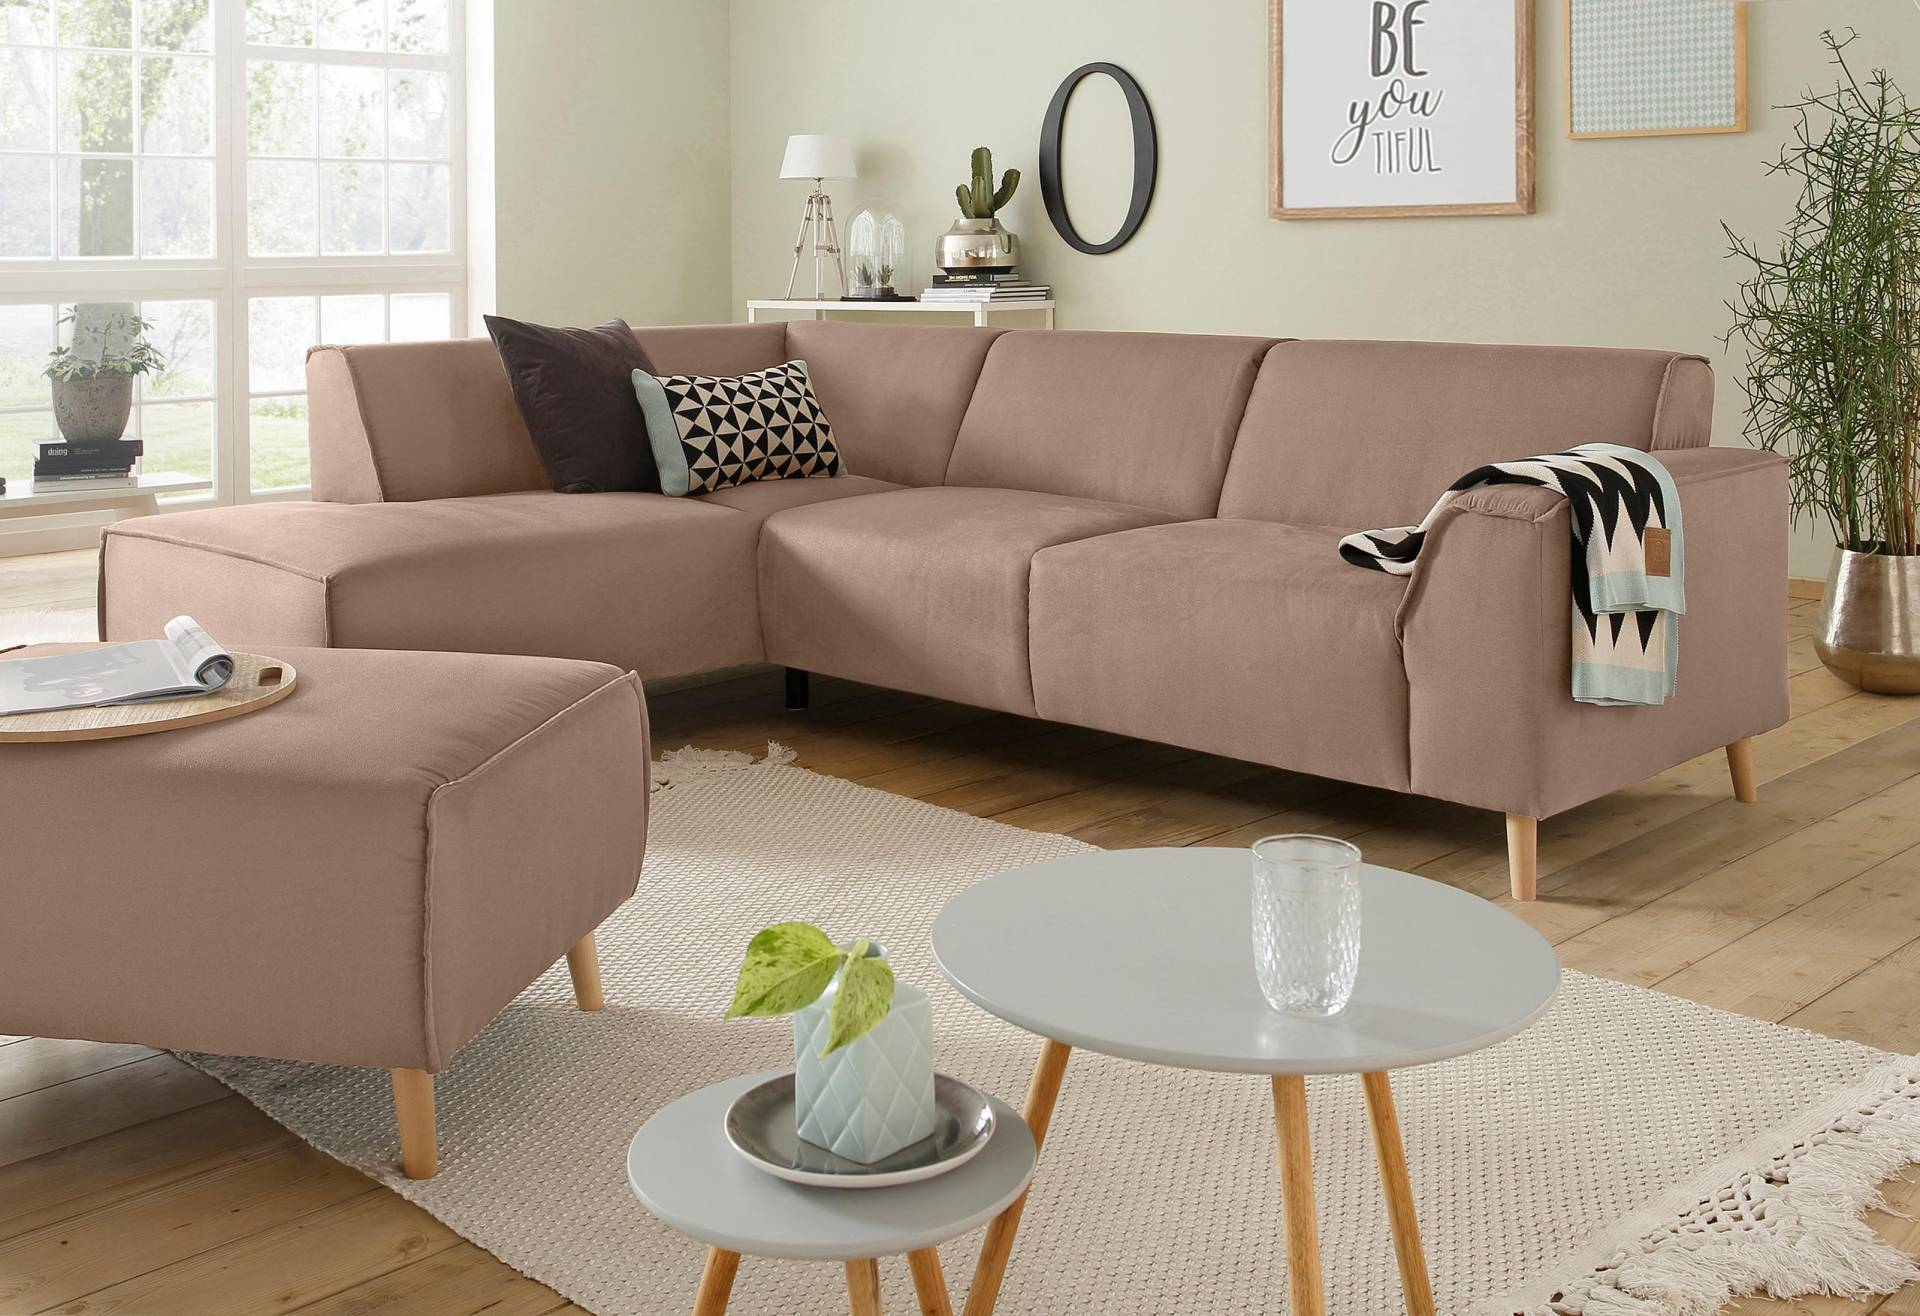 Home affaire Ecksofa »Julia« von home affaire